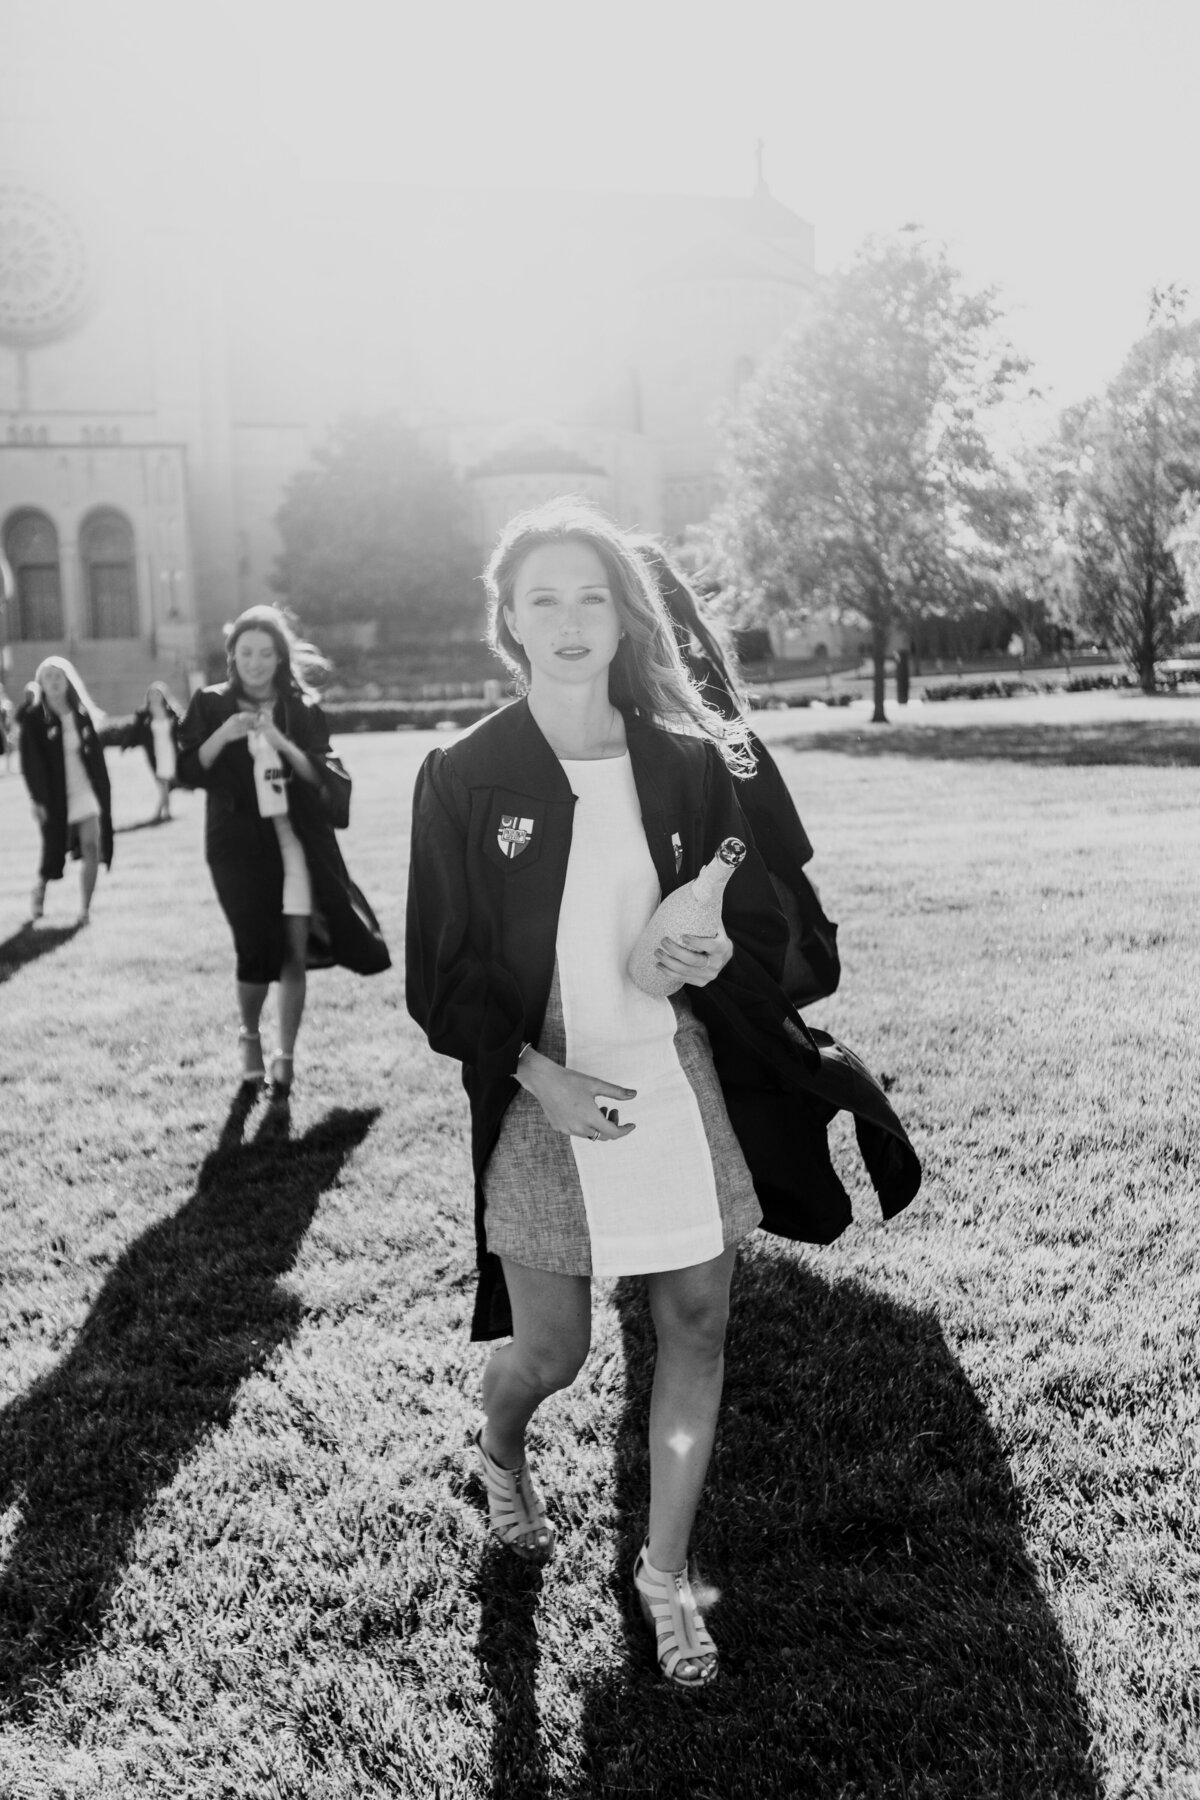 Catholic_University_CUA_Senior_Graduation_Session_2020_Angelika_Johns_Photography-4872-2